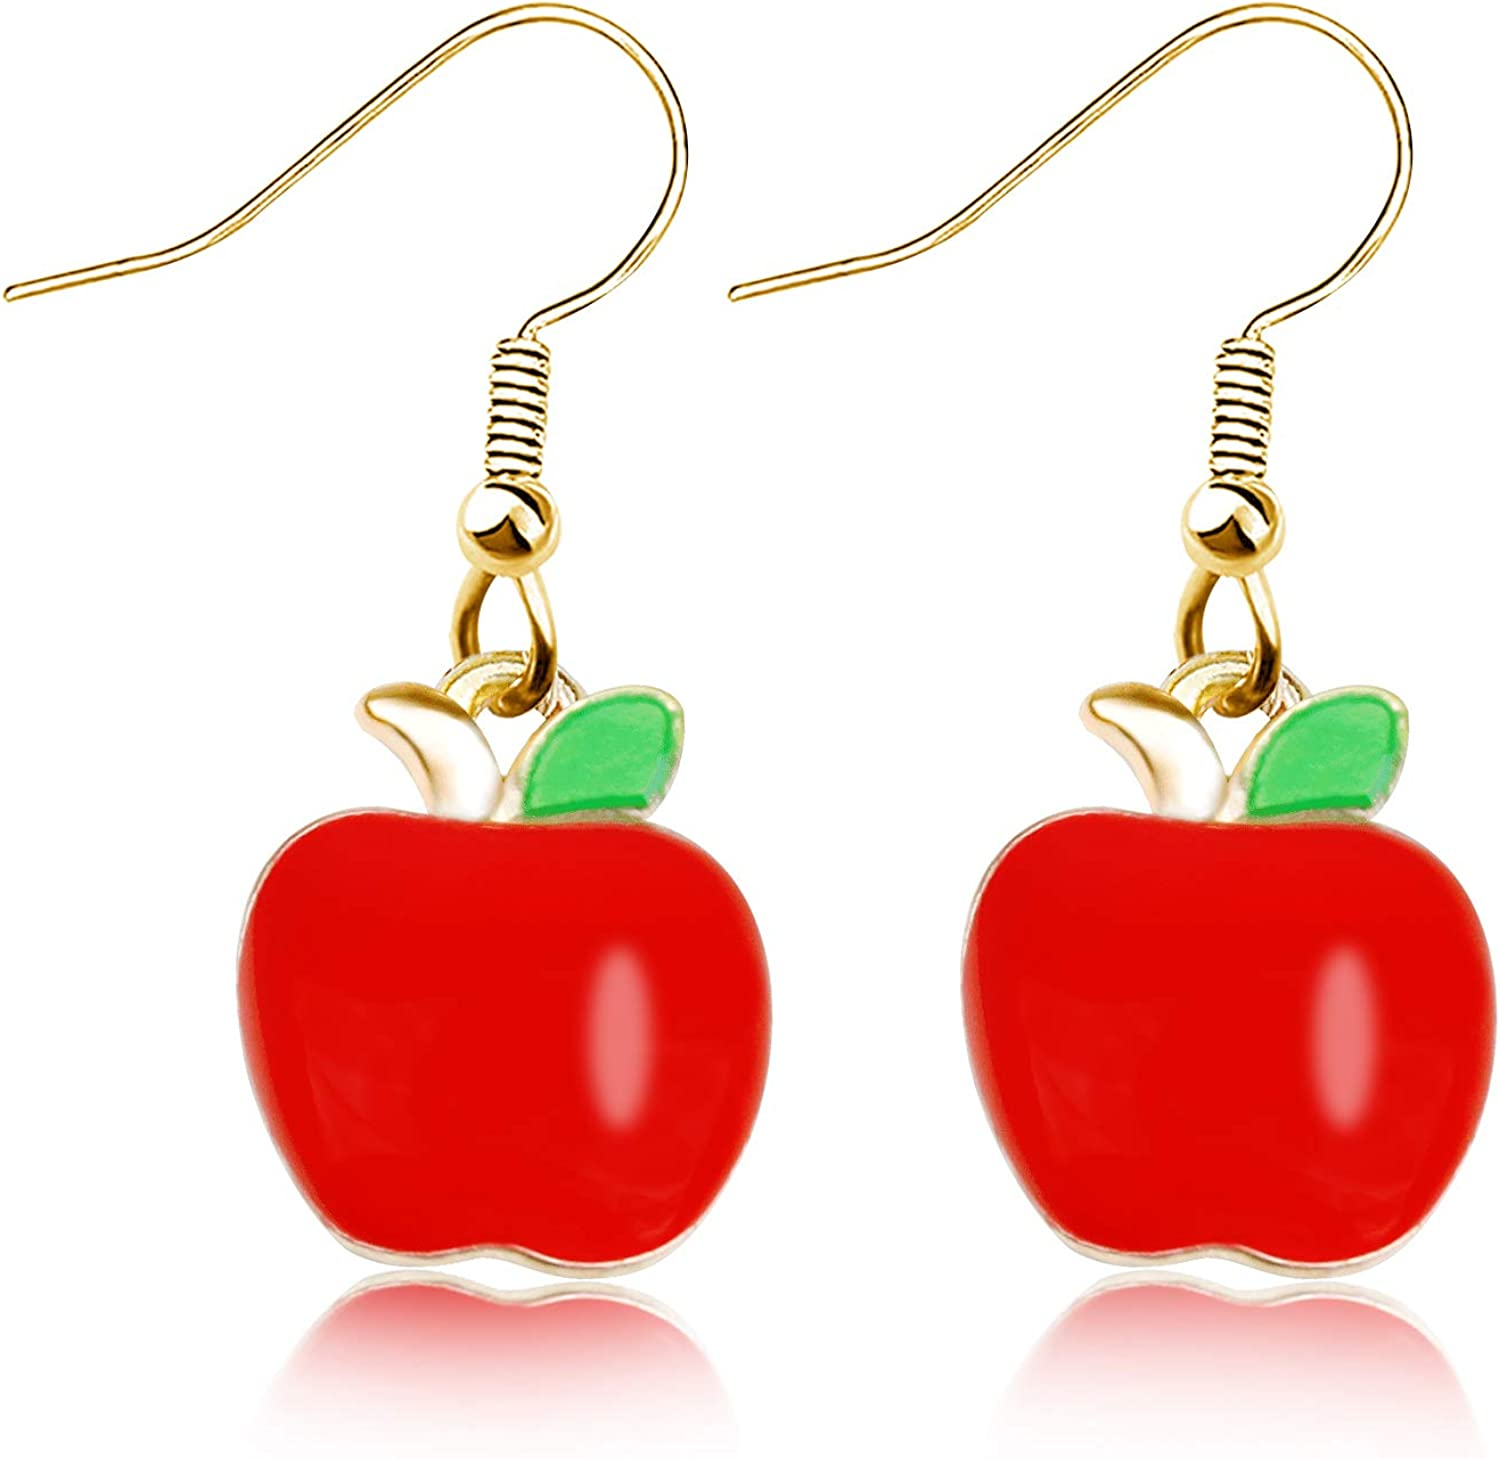 JIGAL Fruit Earrings Red Apple Dangle Earrings Teacher Jewelry Teacher Appreciation Gift from Student